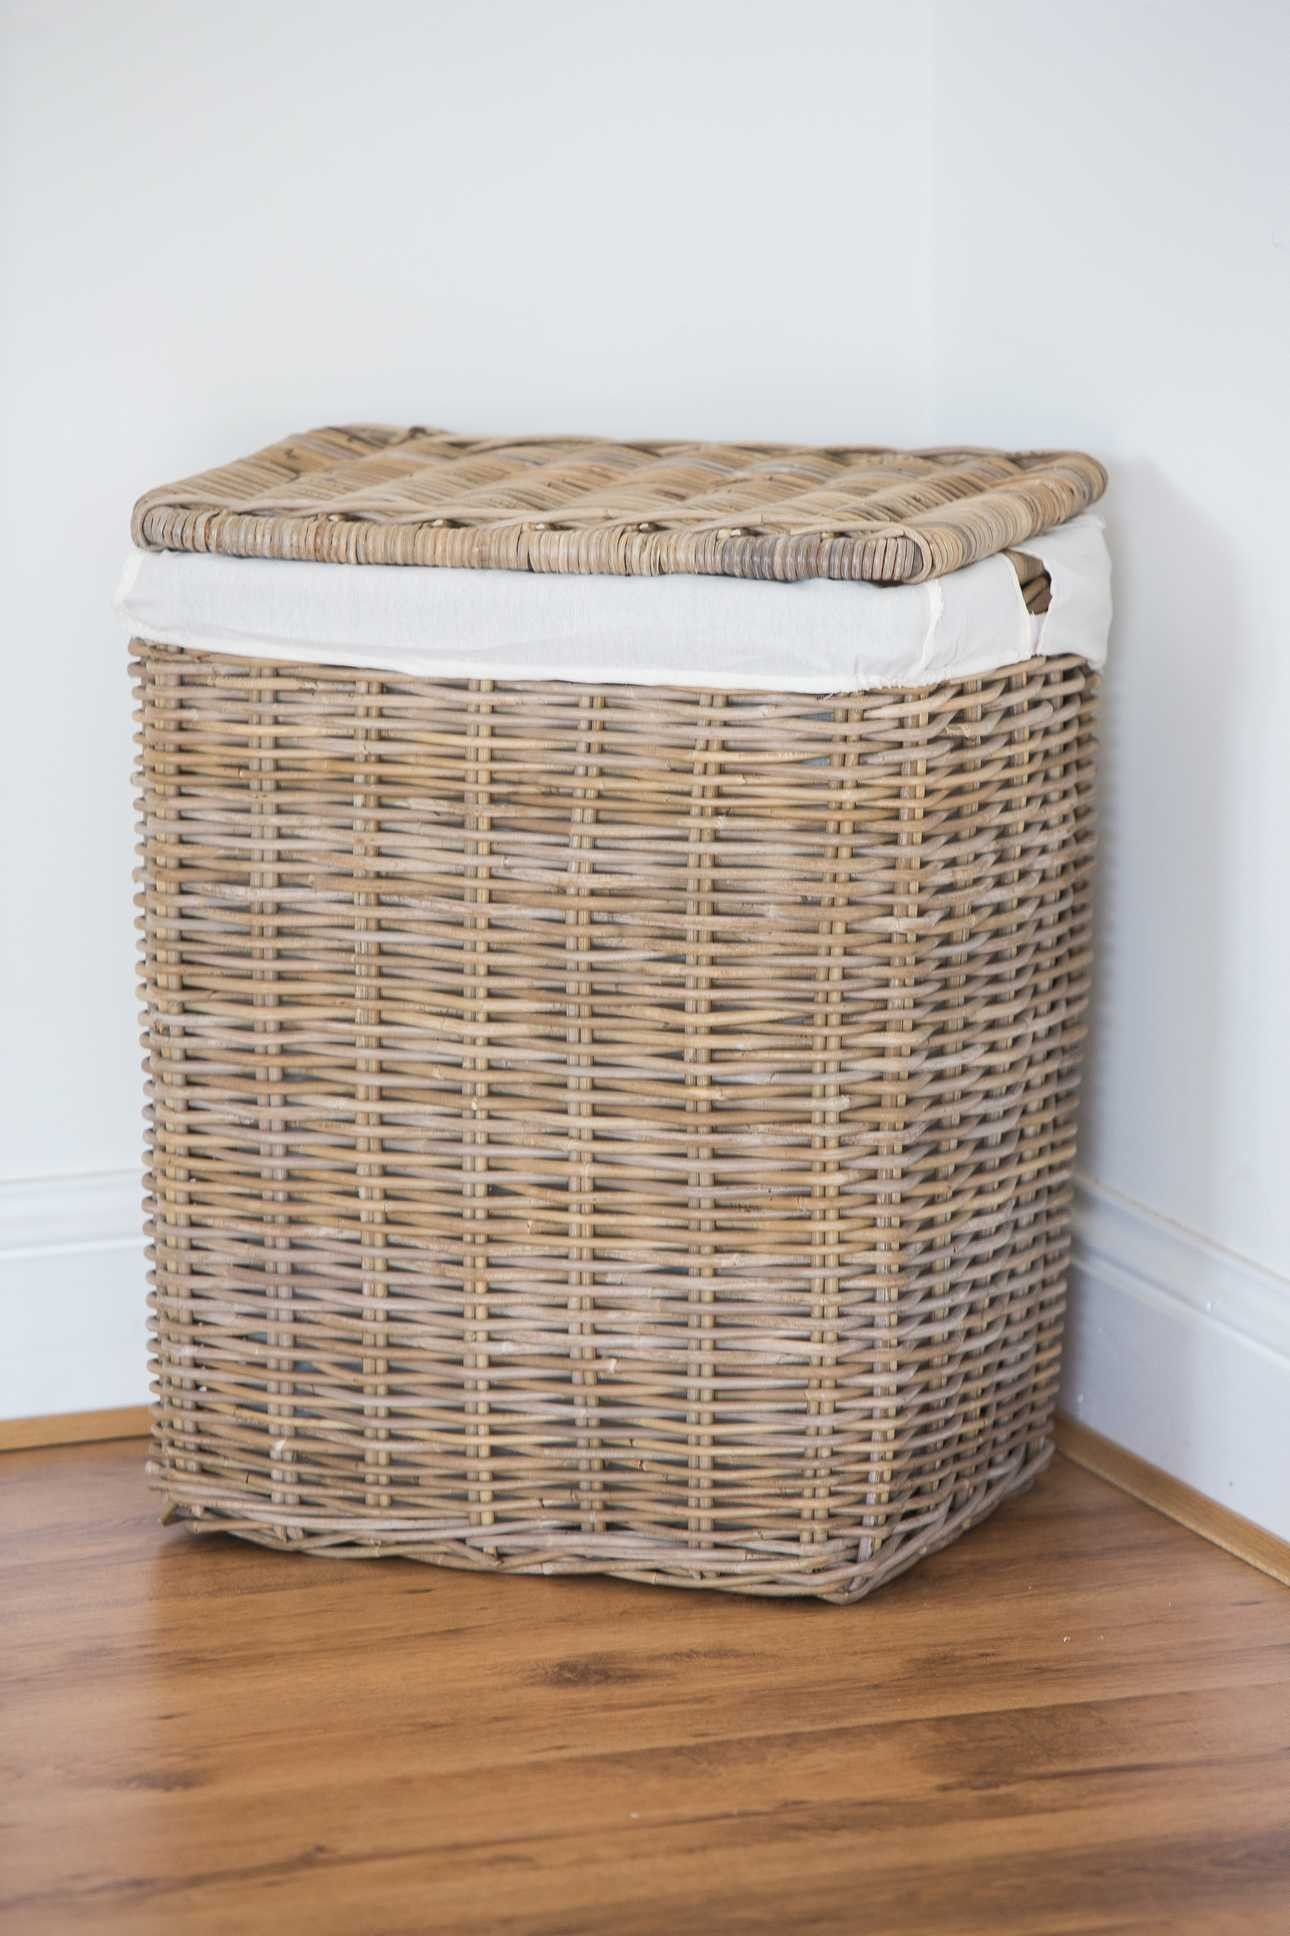 Natural Wicker Laundry Basket Large Laundry Basket Wicker Laundry Basket Laundry Basket Bedroom